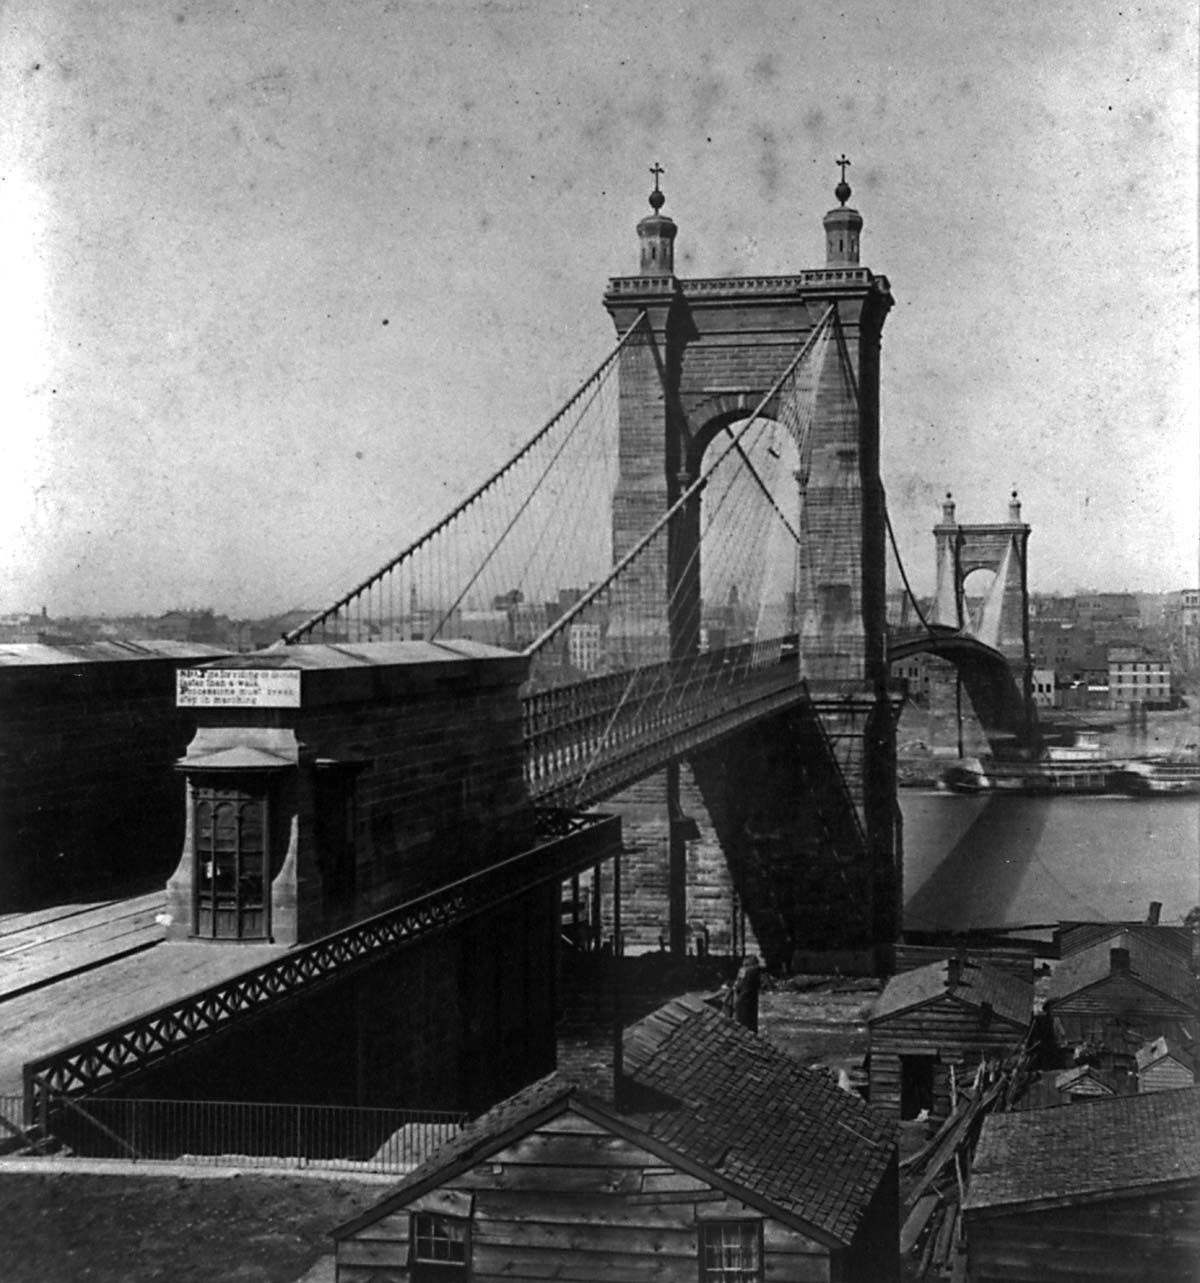 View of the bridge from the Covington side in 1868 with its toll booth. Tolls were still being collected as late as 1963. Library of Congress.